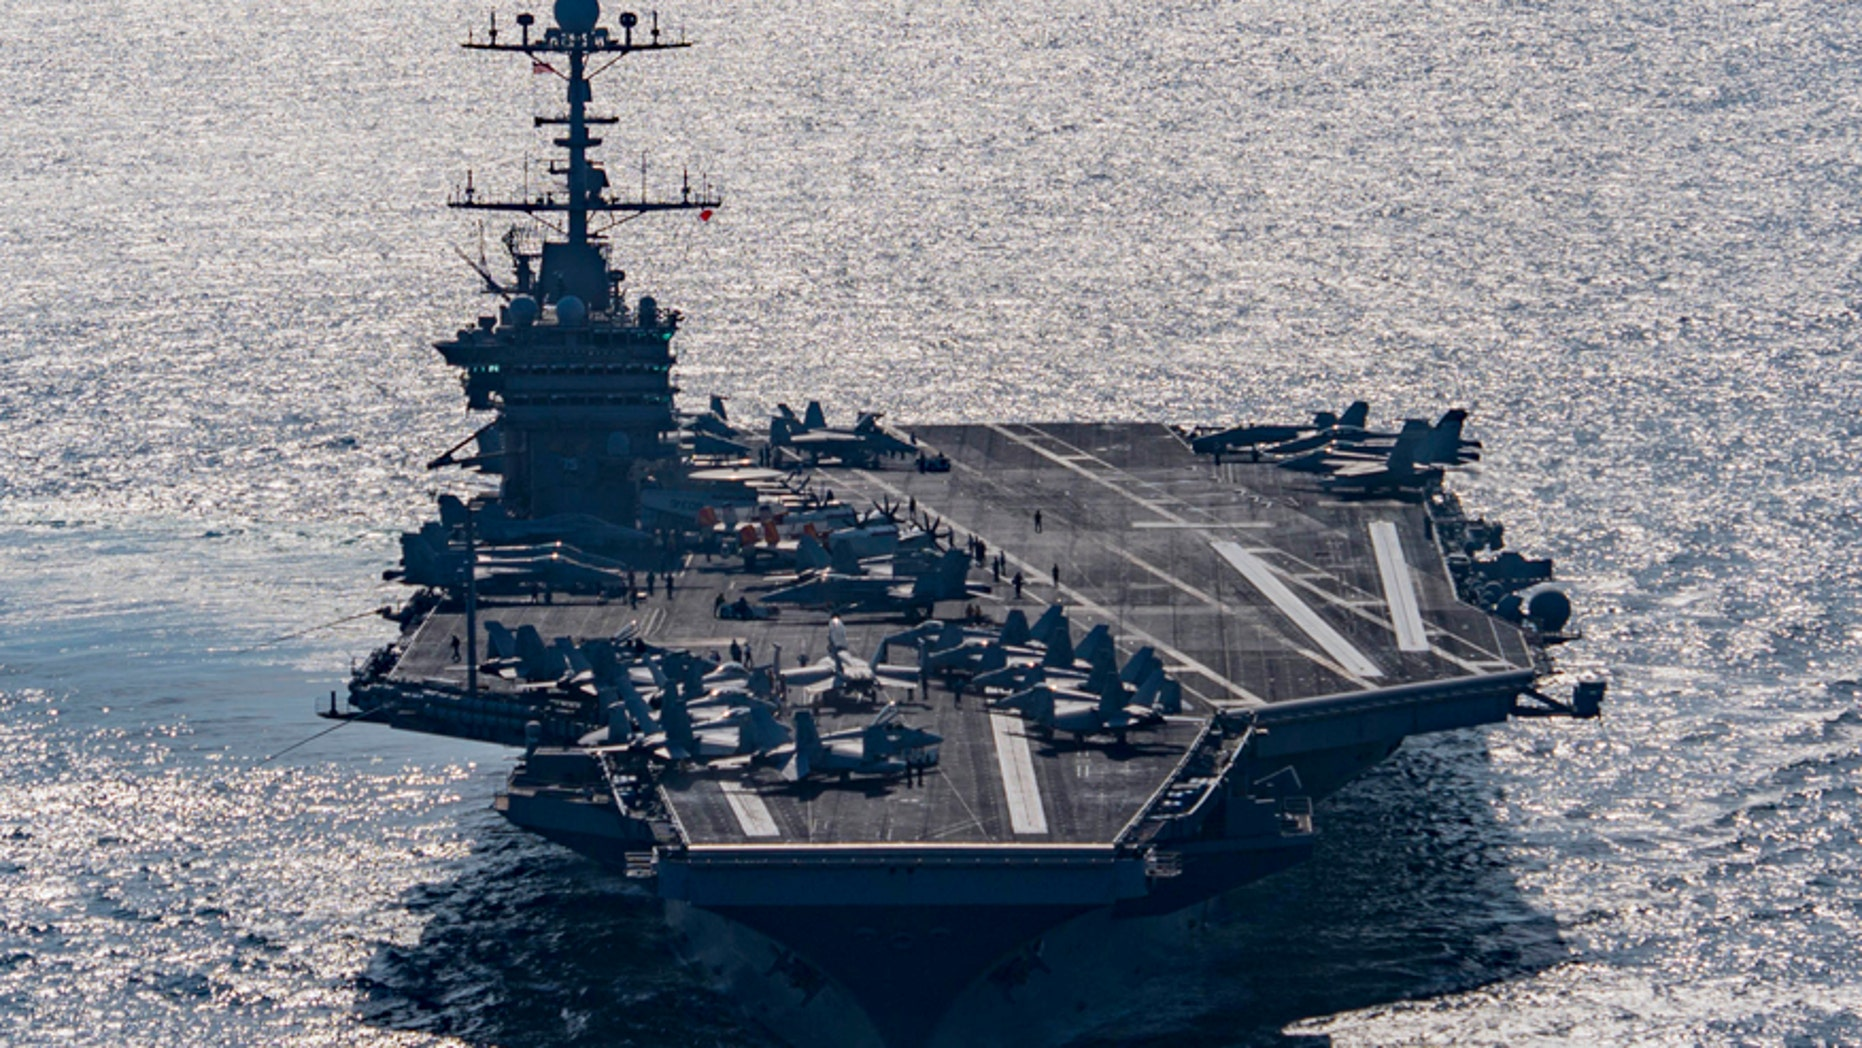 The aircraft carrier USS Harry S. Truman navigates the Gulf of Oman.